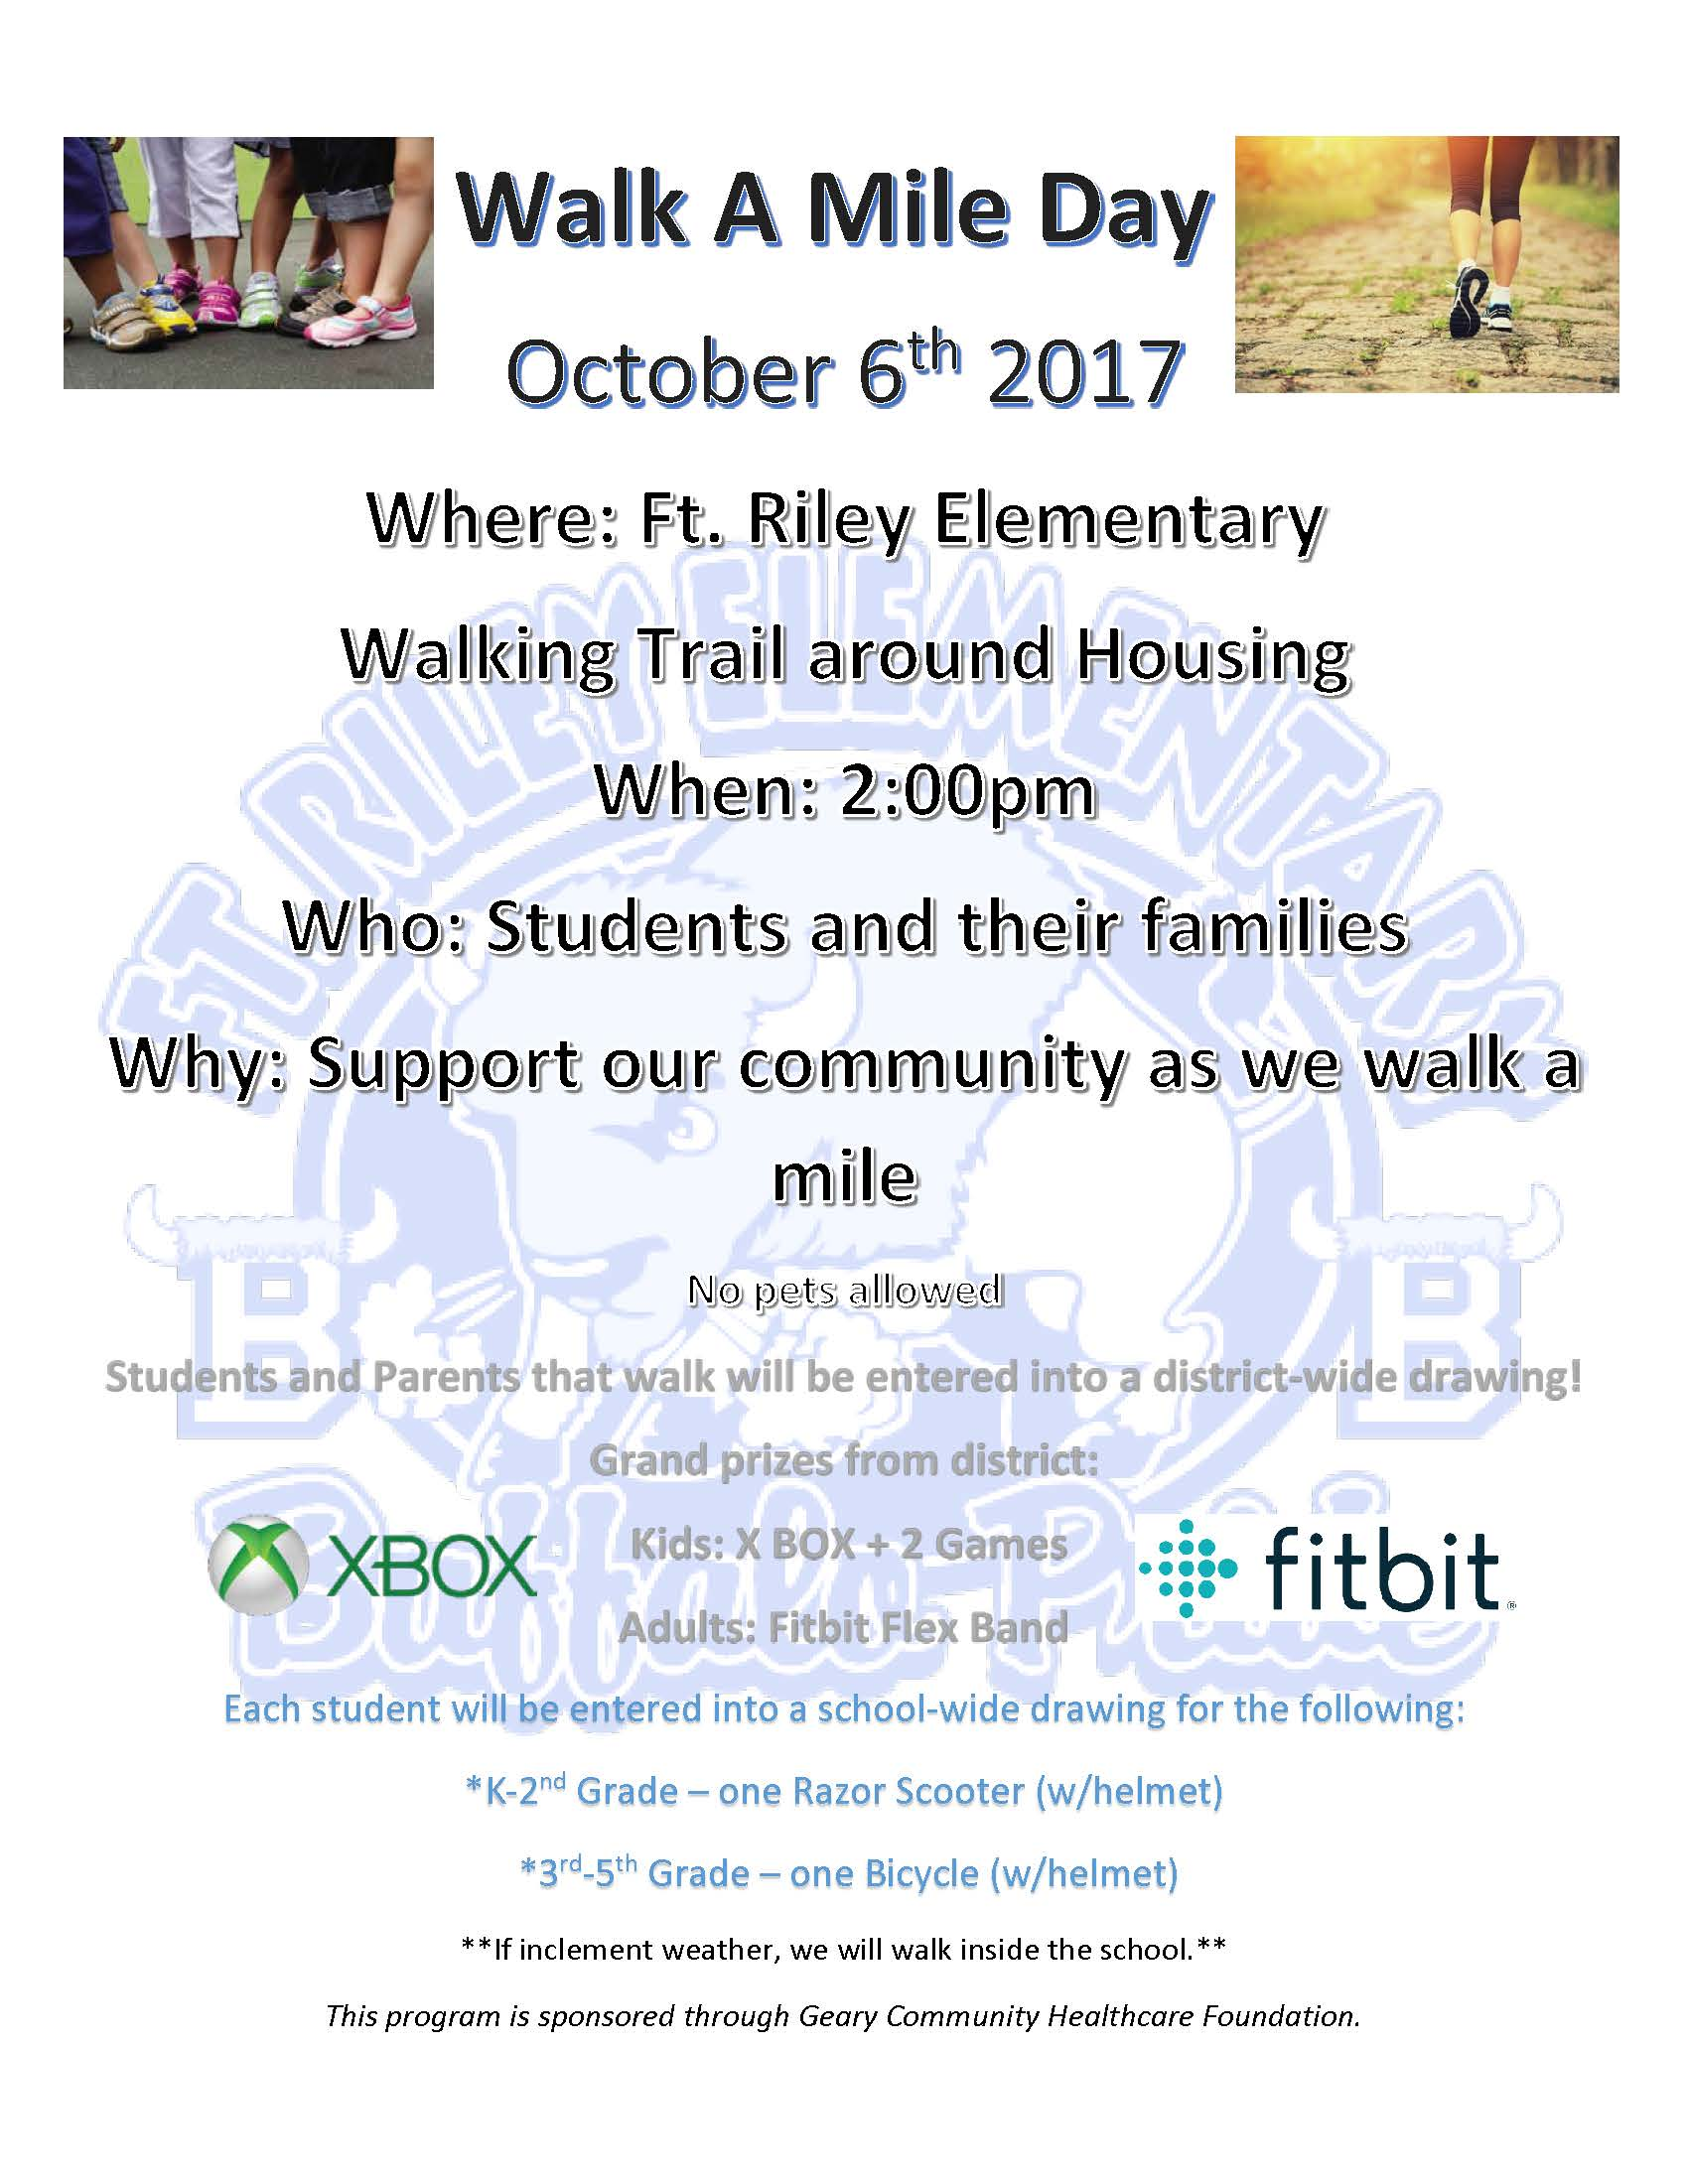 Fort Riley Elementary Walk a Mile Flyer